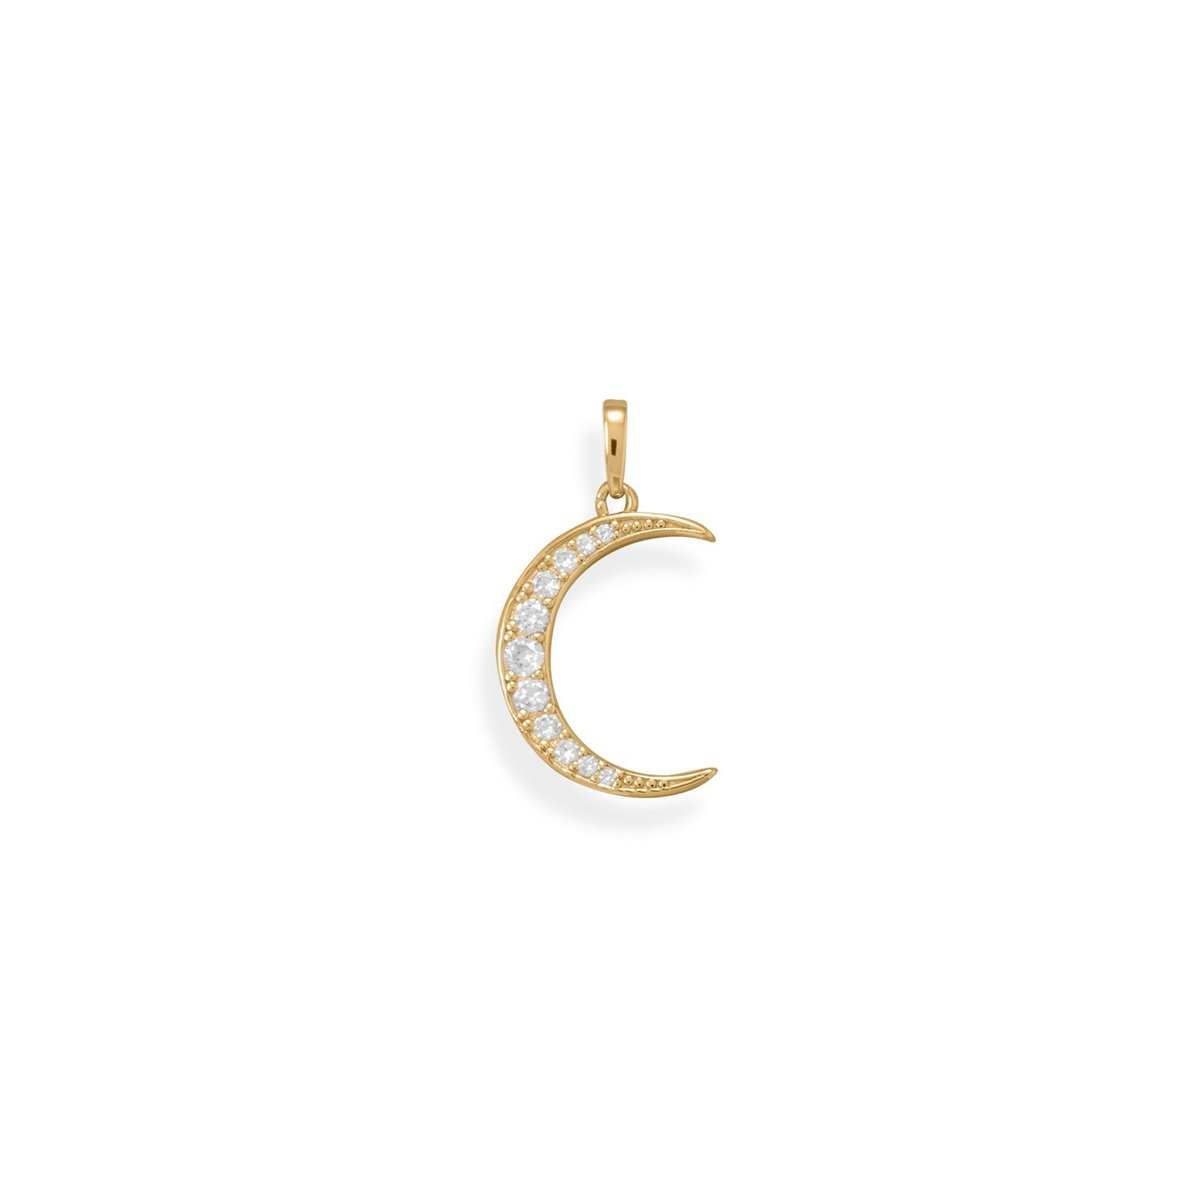 Excited to share the latest addition to my #etsy shop: Pendant / 14 Karat Gold Plated CZ Crescent Moon Pendant / Jewelry For Her / Unique Jewelry / Quality Pendant / Celestial Jewelry https://t.co/fBZp88rKiH #gold #birthday #mothersday #jewelrymaking #summer #clear #gi https://t.co/14YeJAUrIr